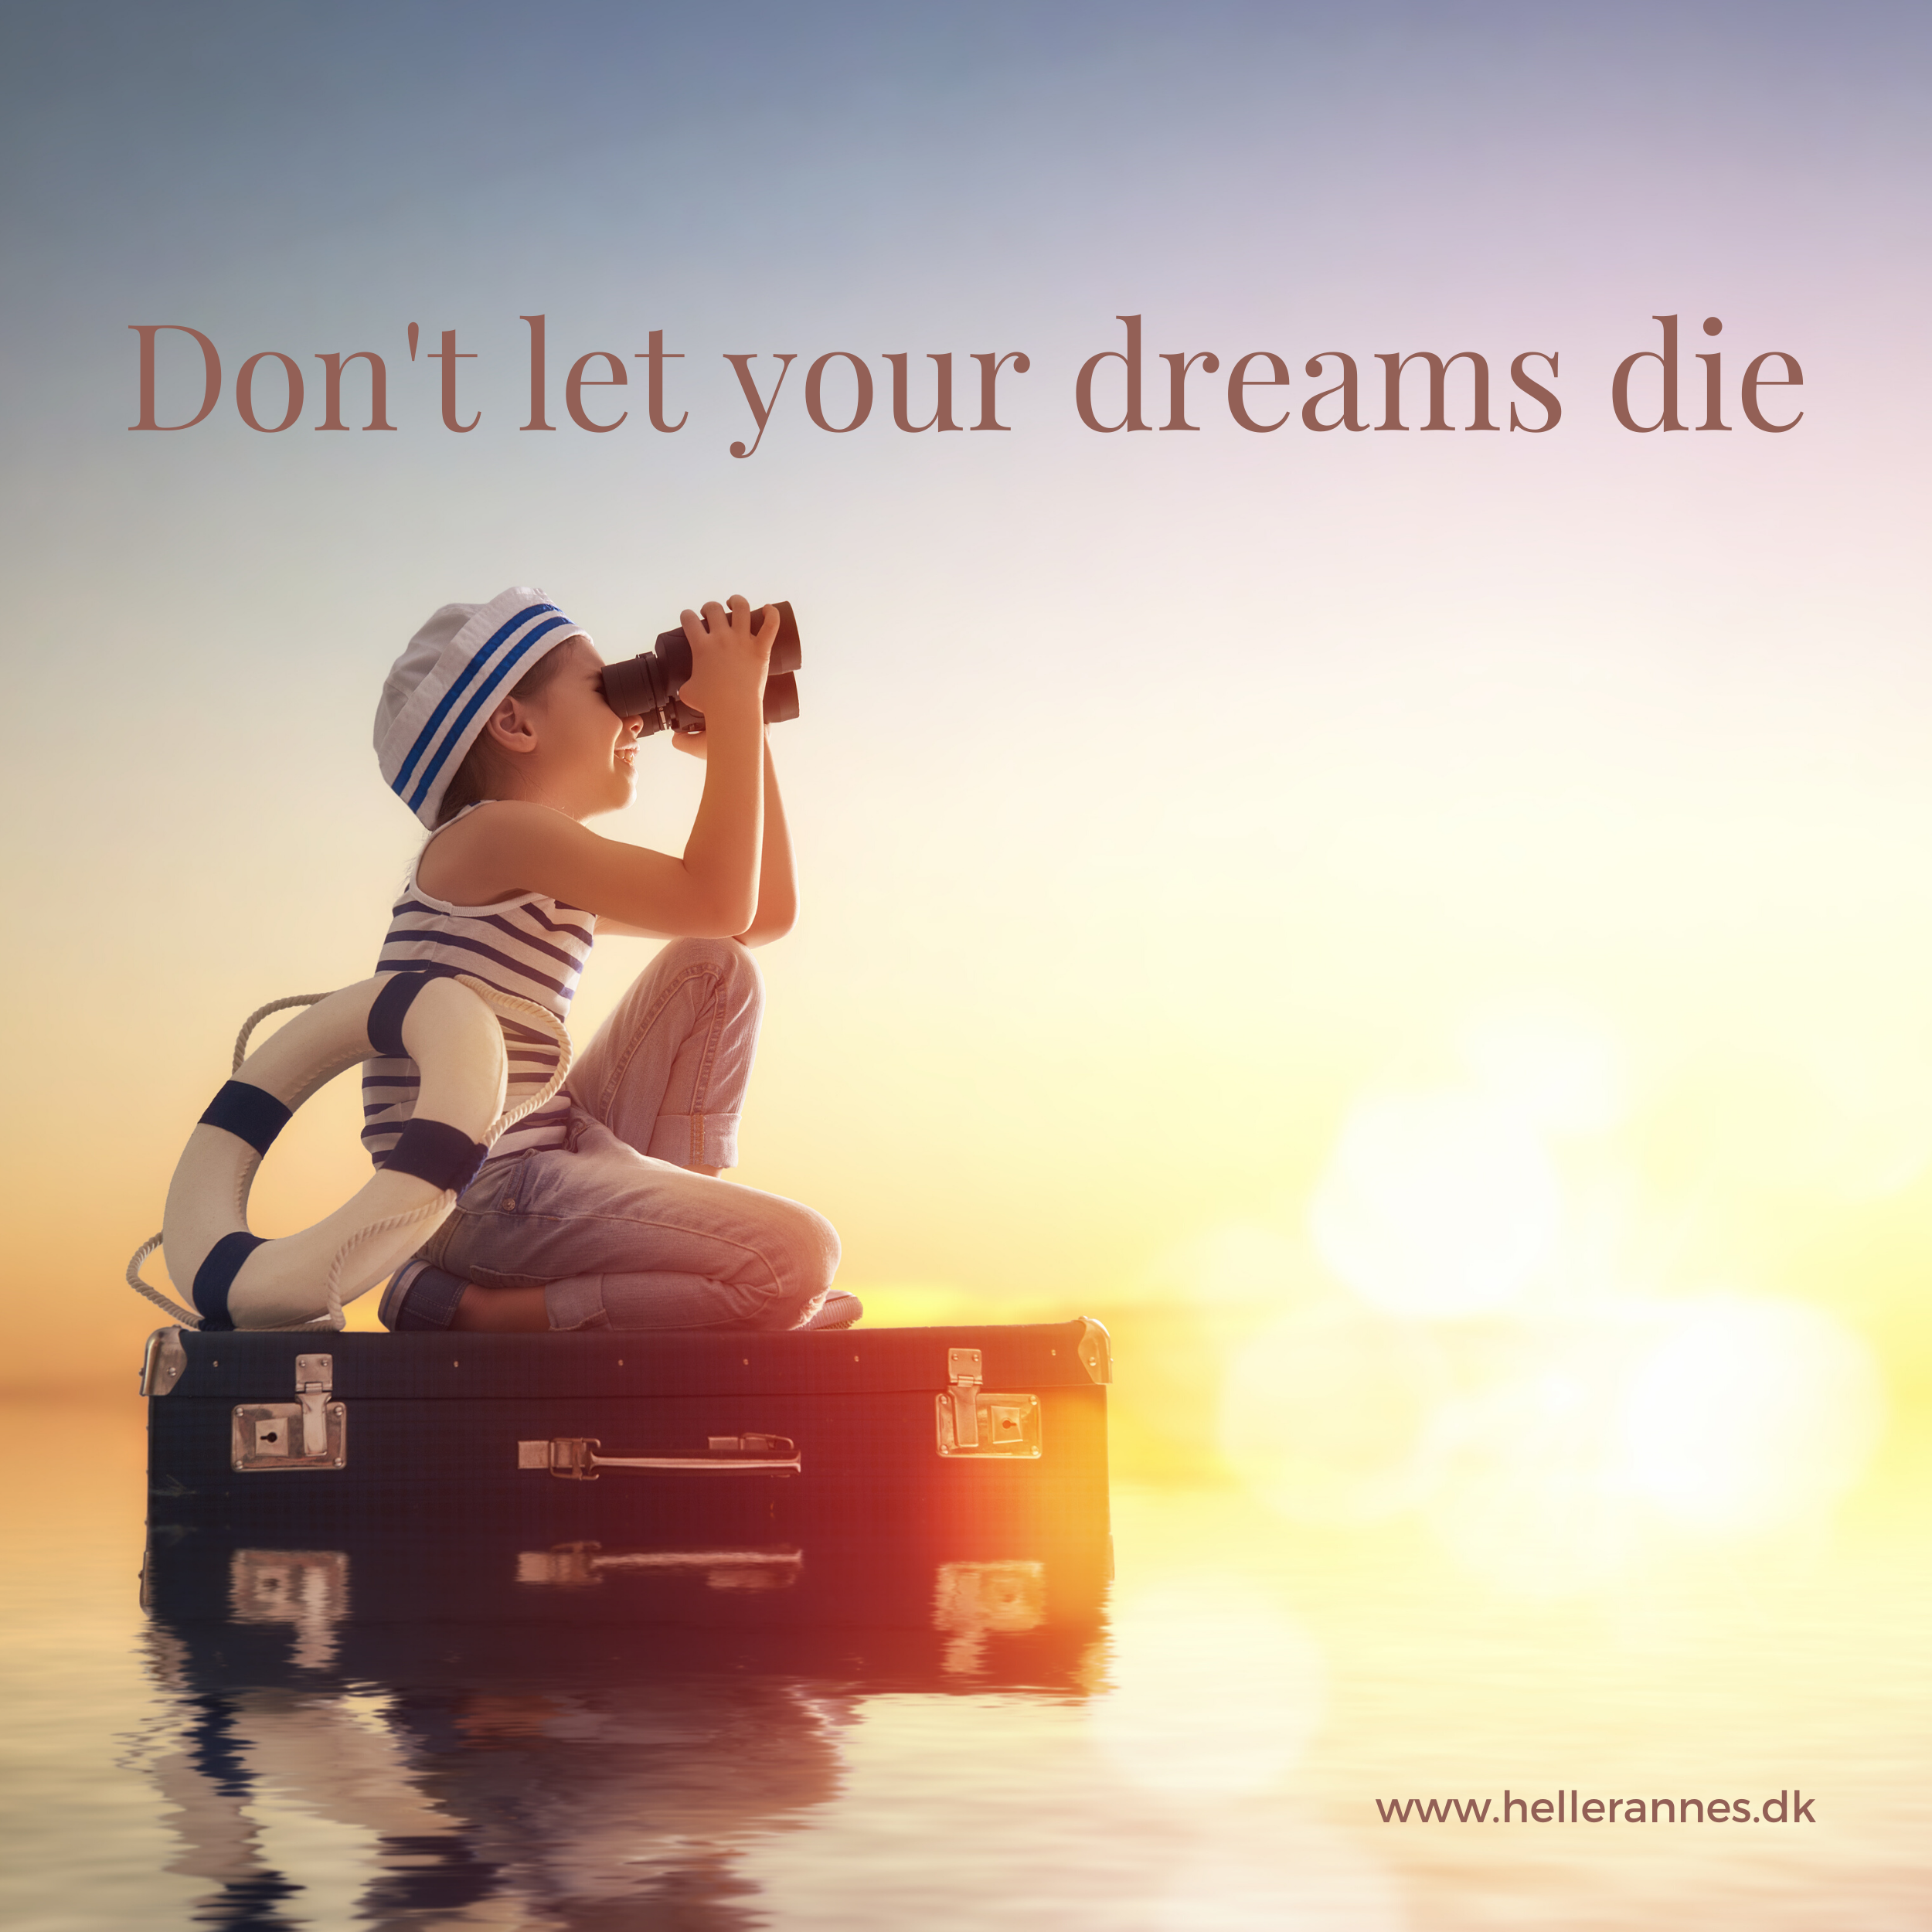 Don't let your dreams die